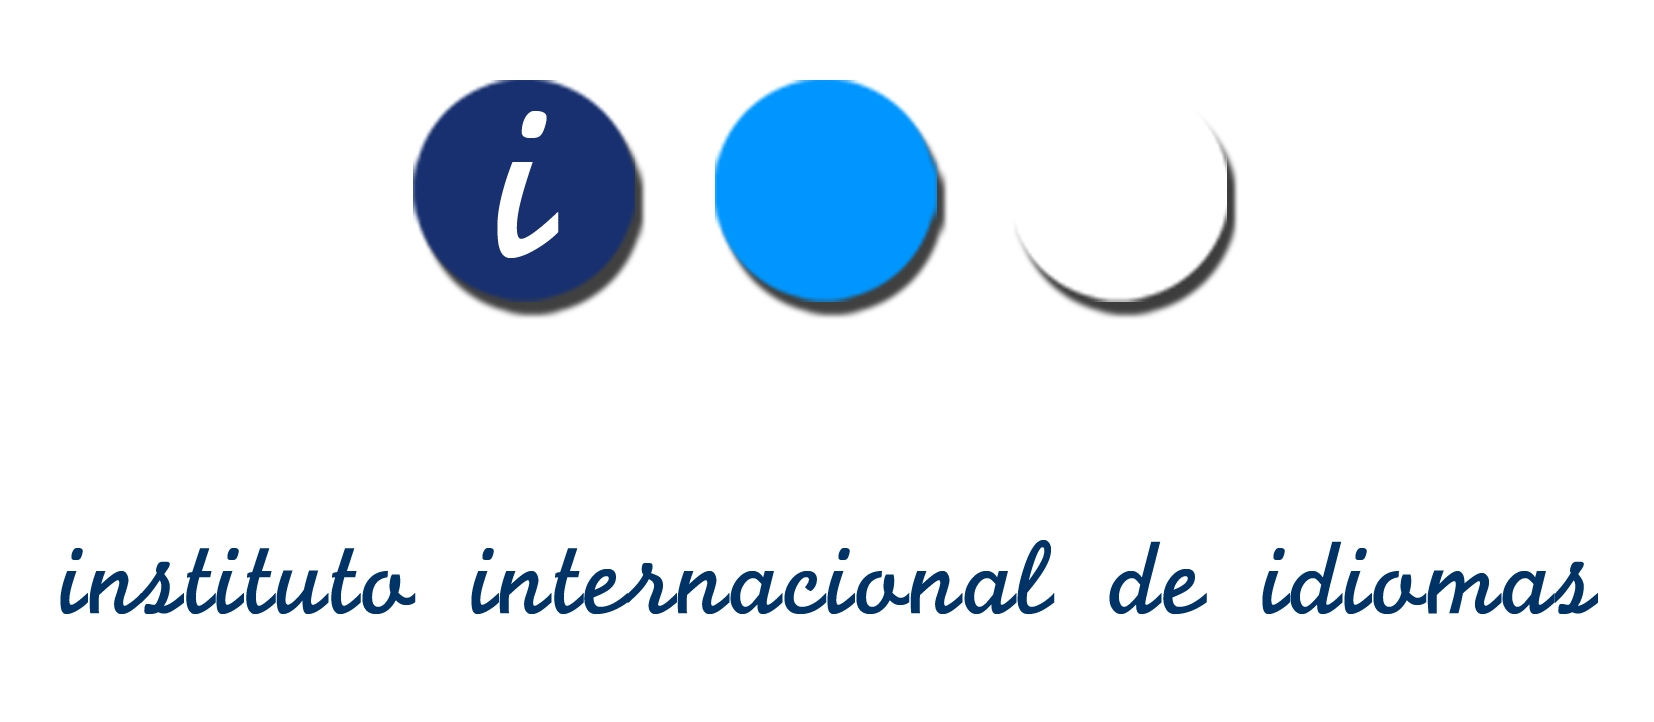 instituto internacional de idiomas logo